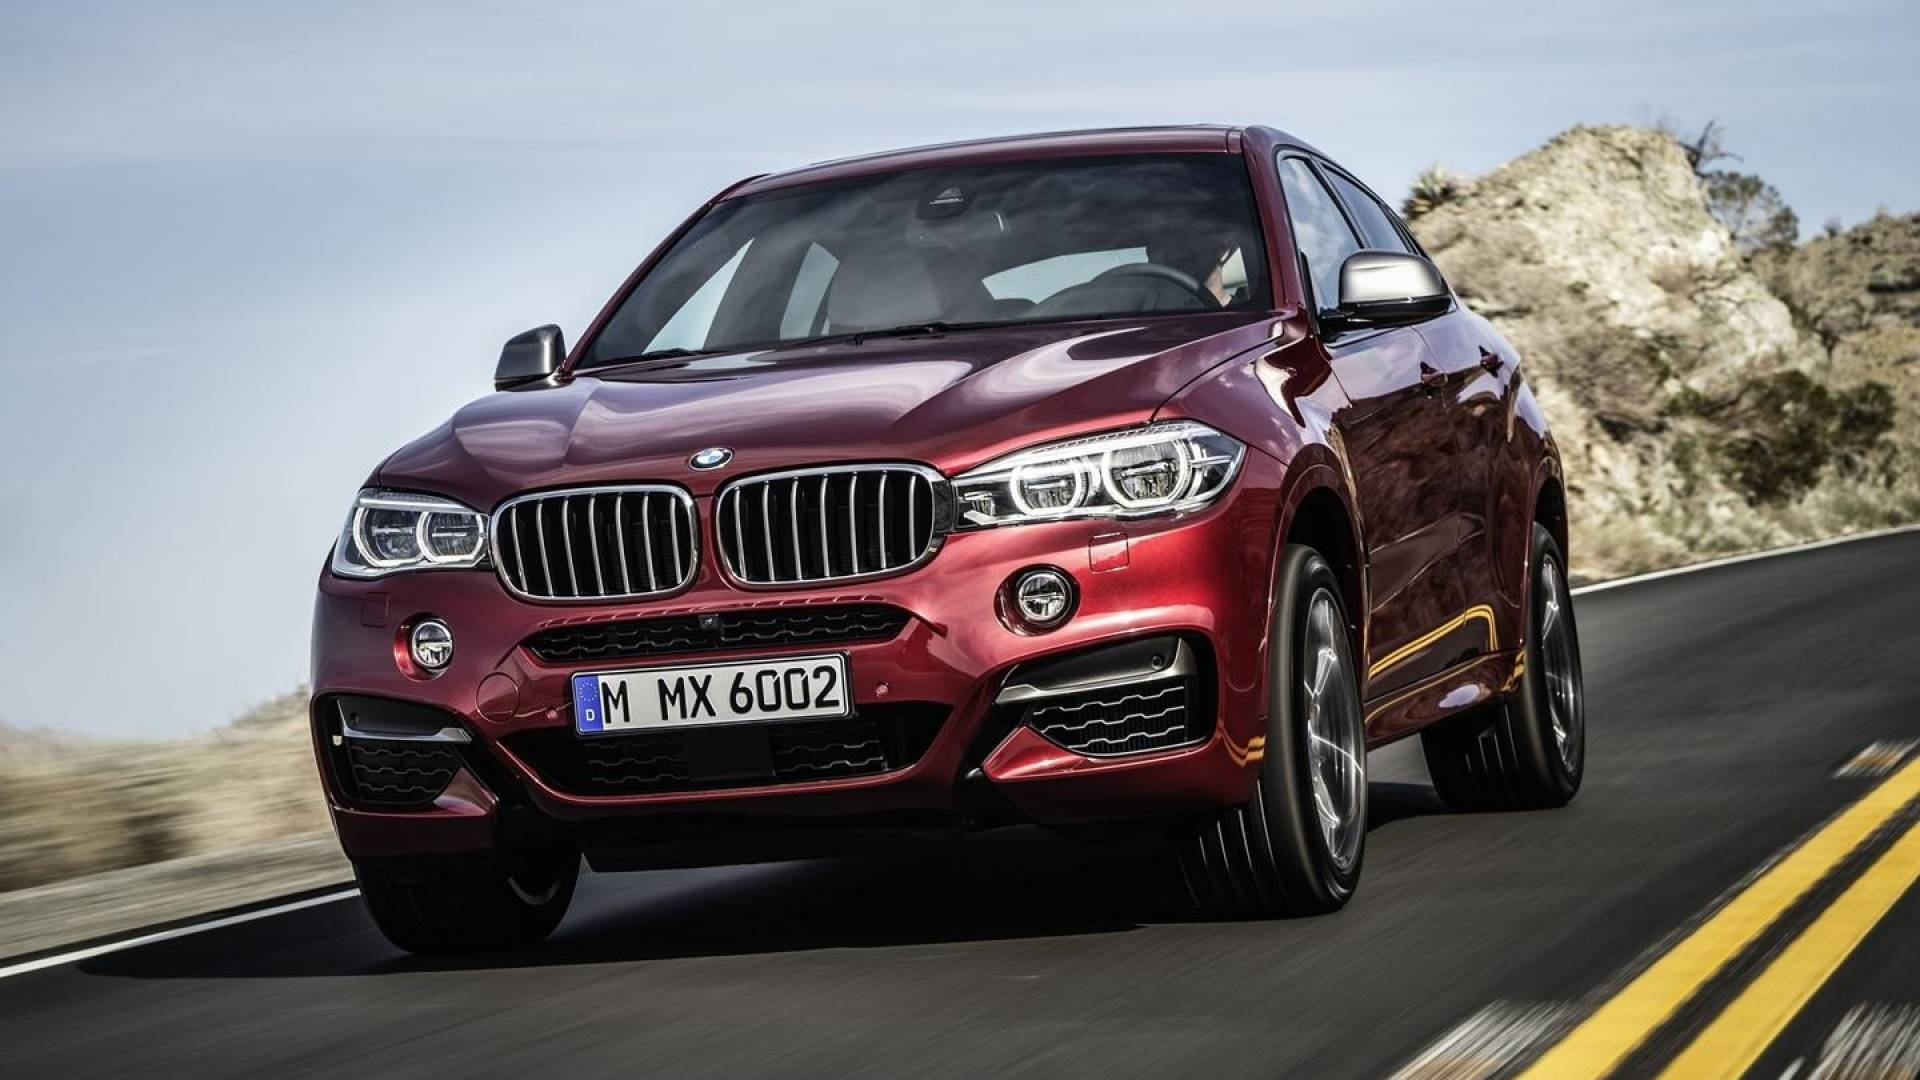 bmw x6 y x6 m precios prueba ficha t cnica fotos y noticias diariomotor. Black Bedroom Furniture Sets. Home Design Ideas